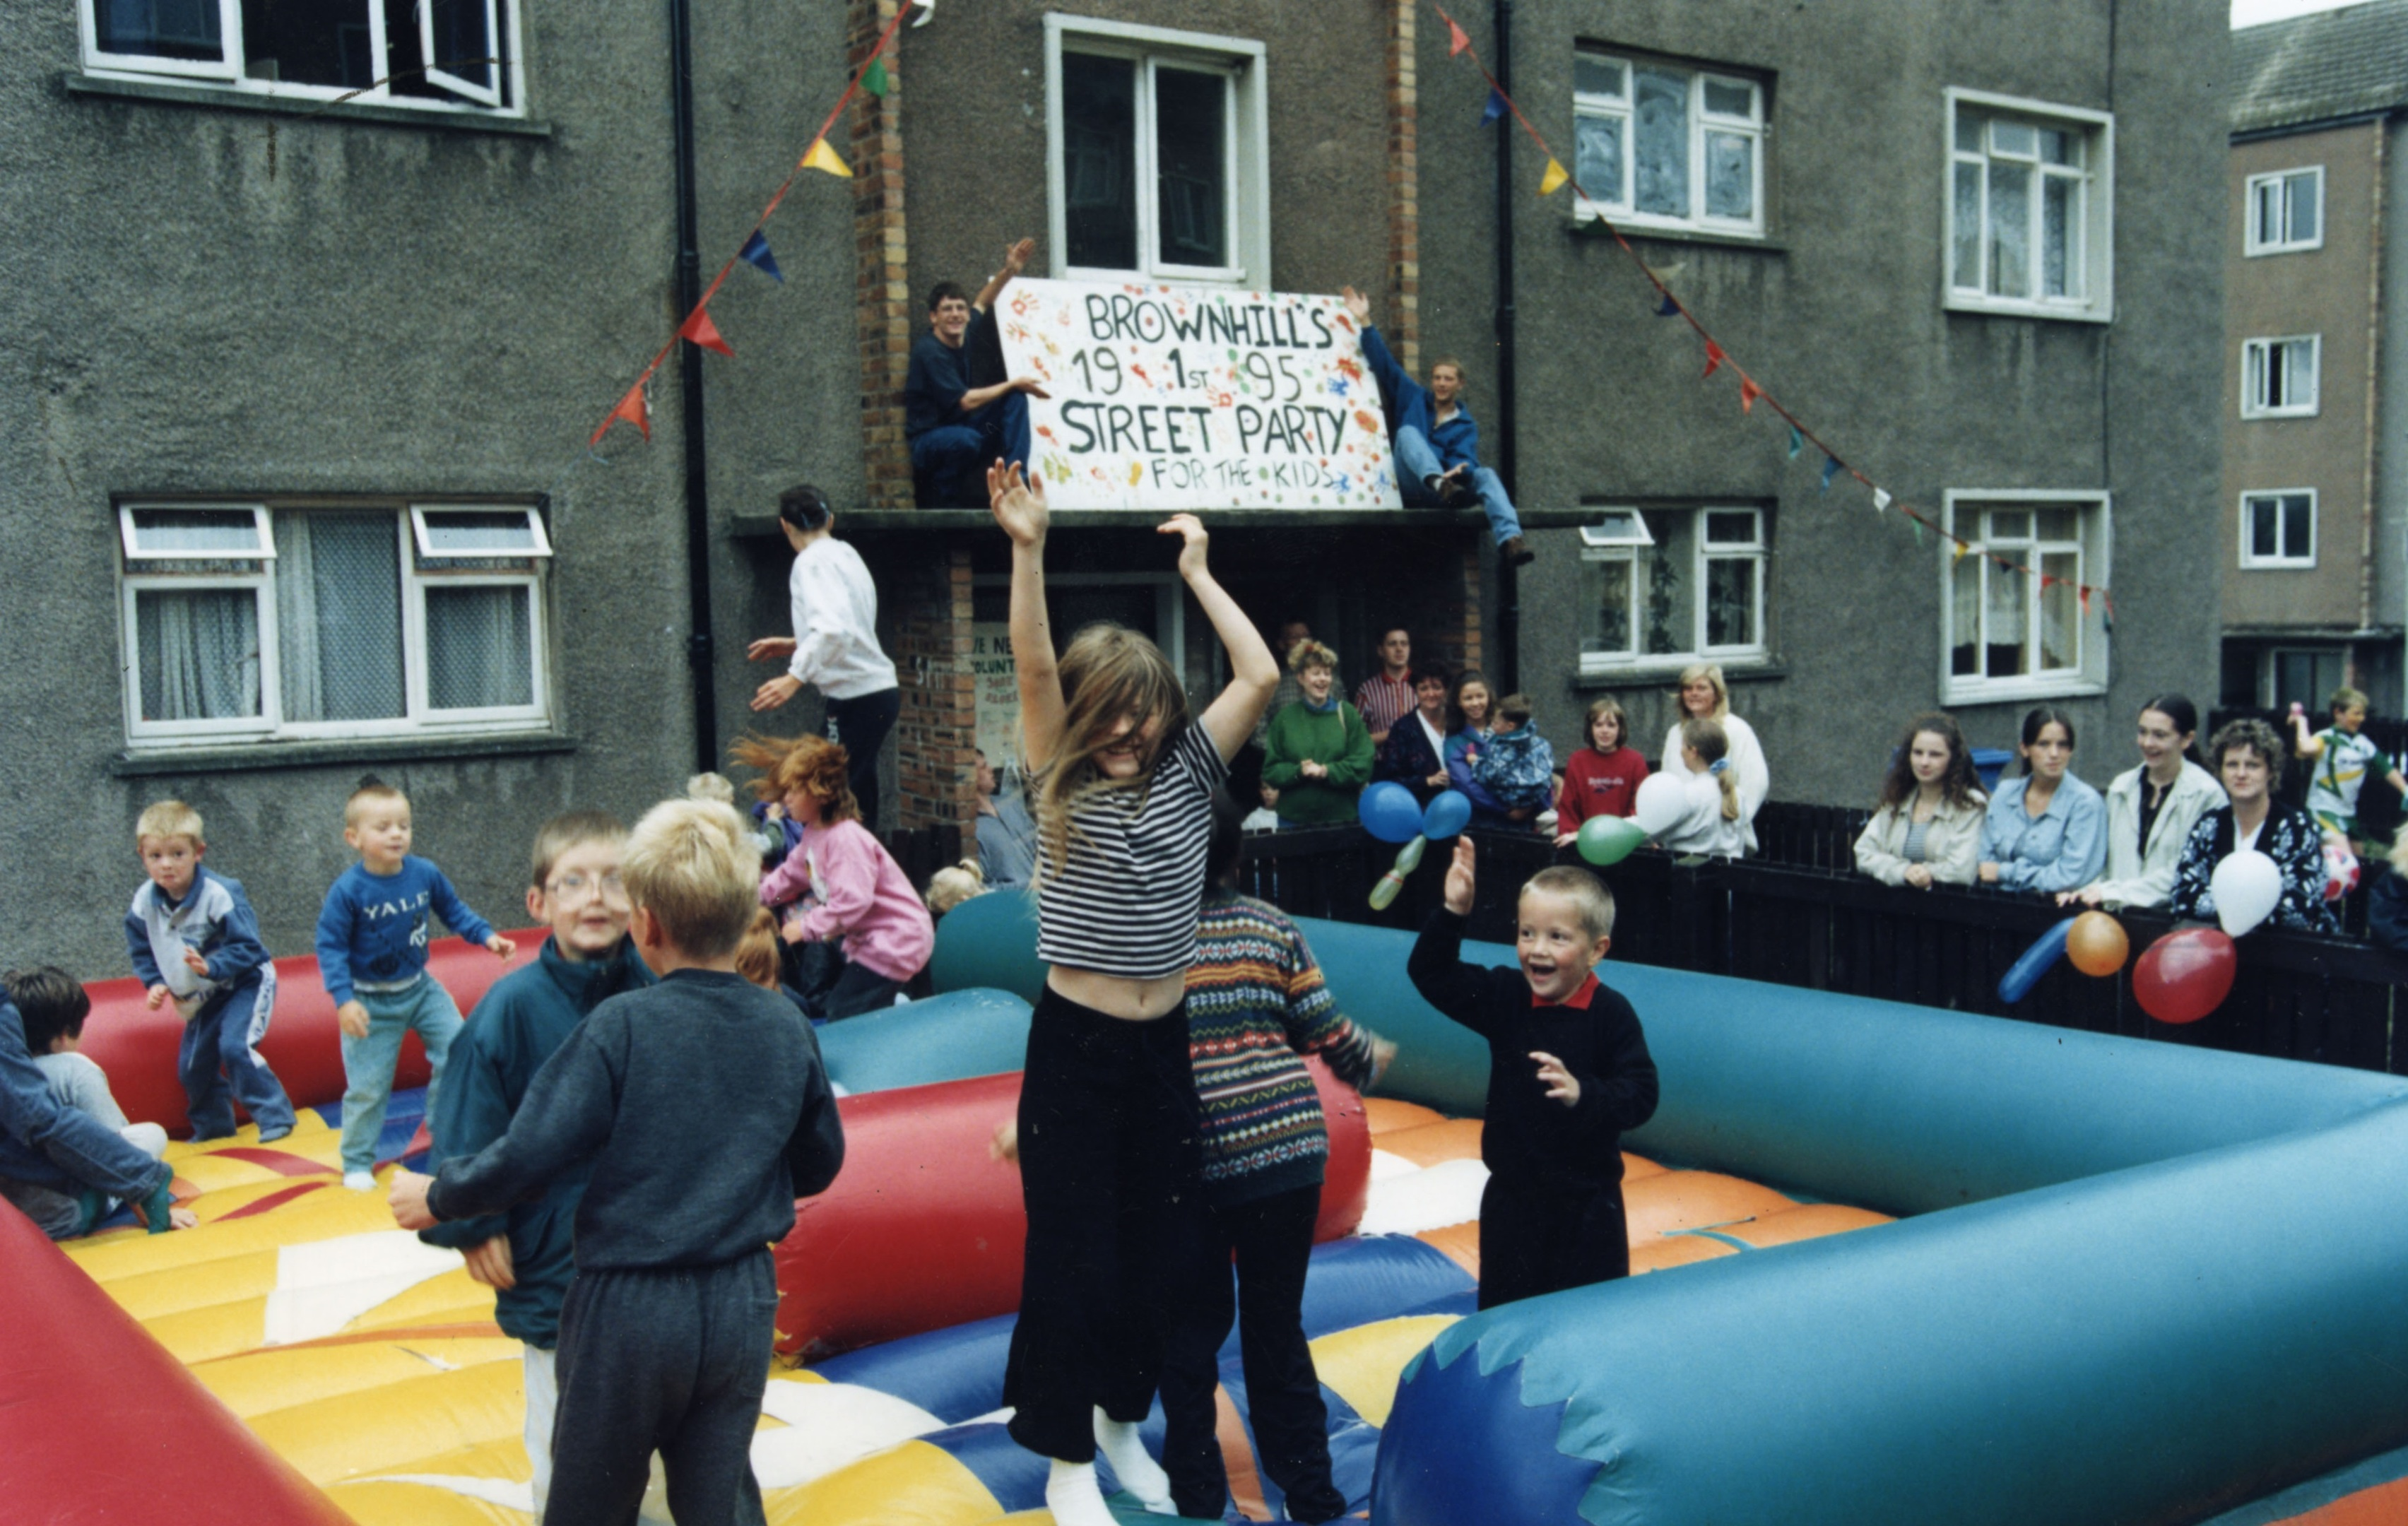 A street party in Brownhill Place in 1995.